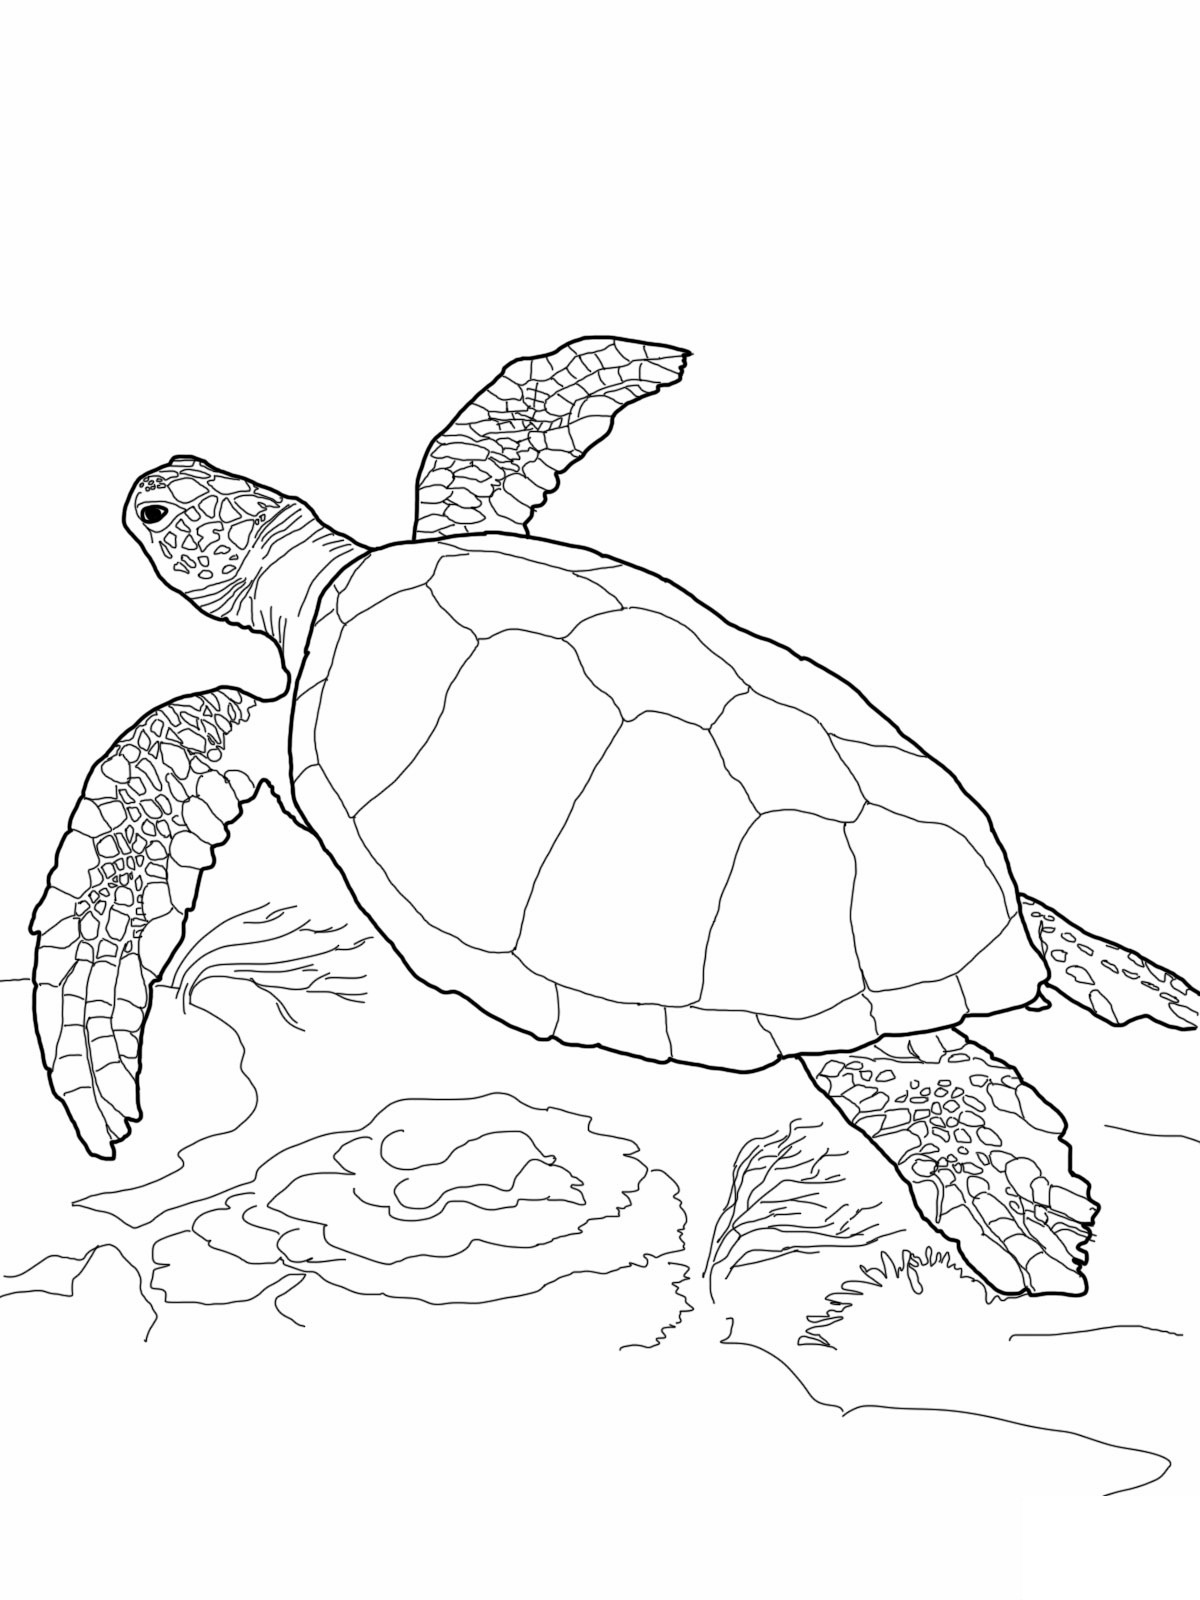 realistic turtle coloring pages free printable turtle coloring pages for kids coloring pages turtle realistic